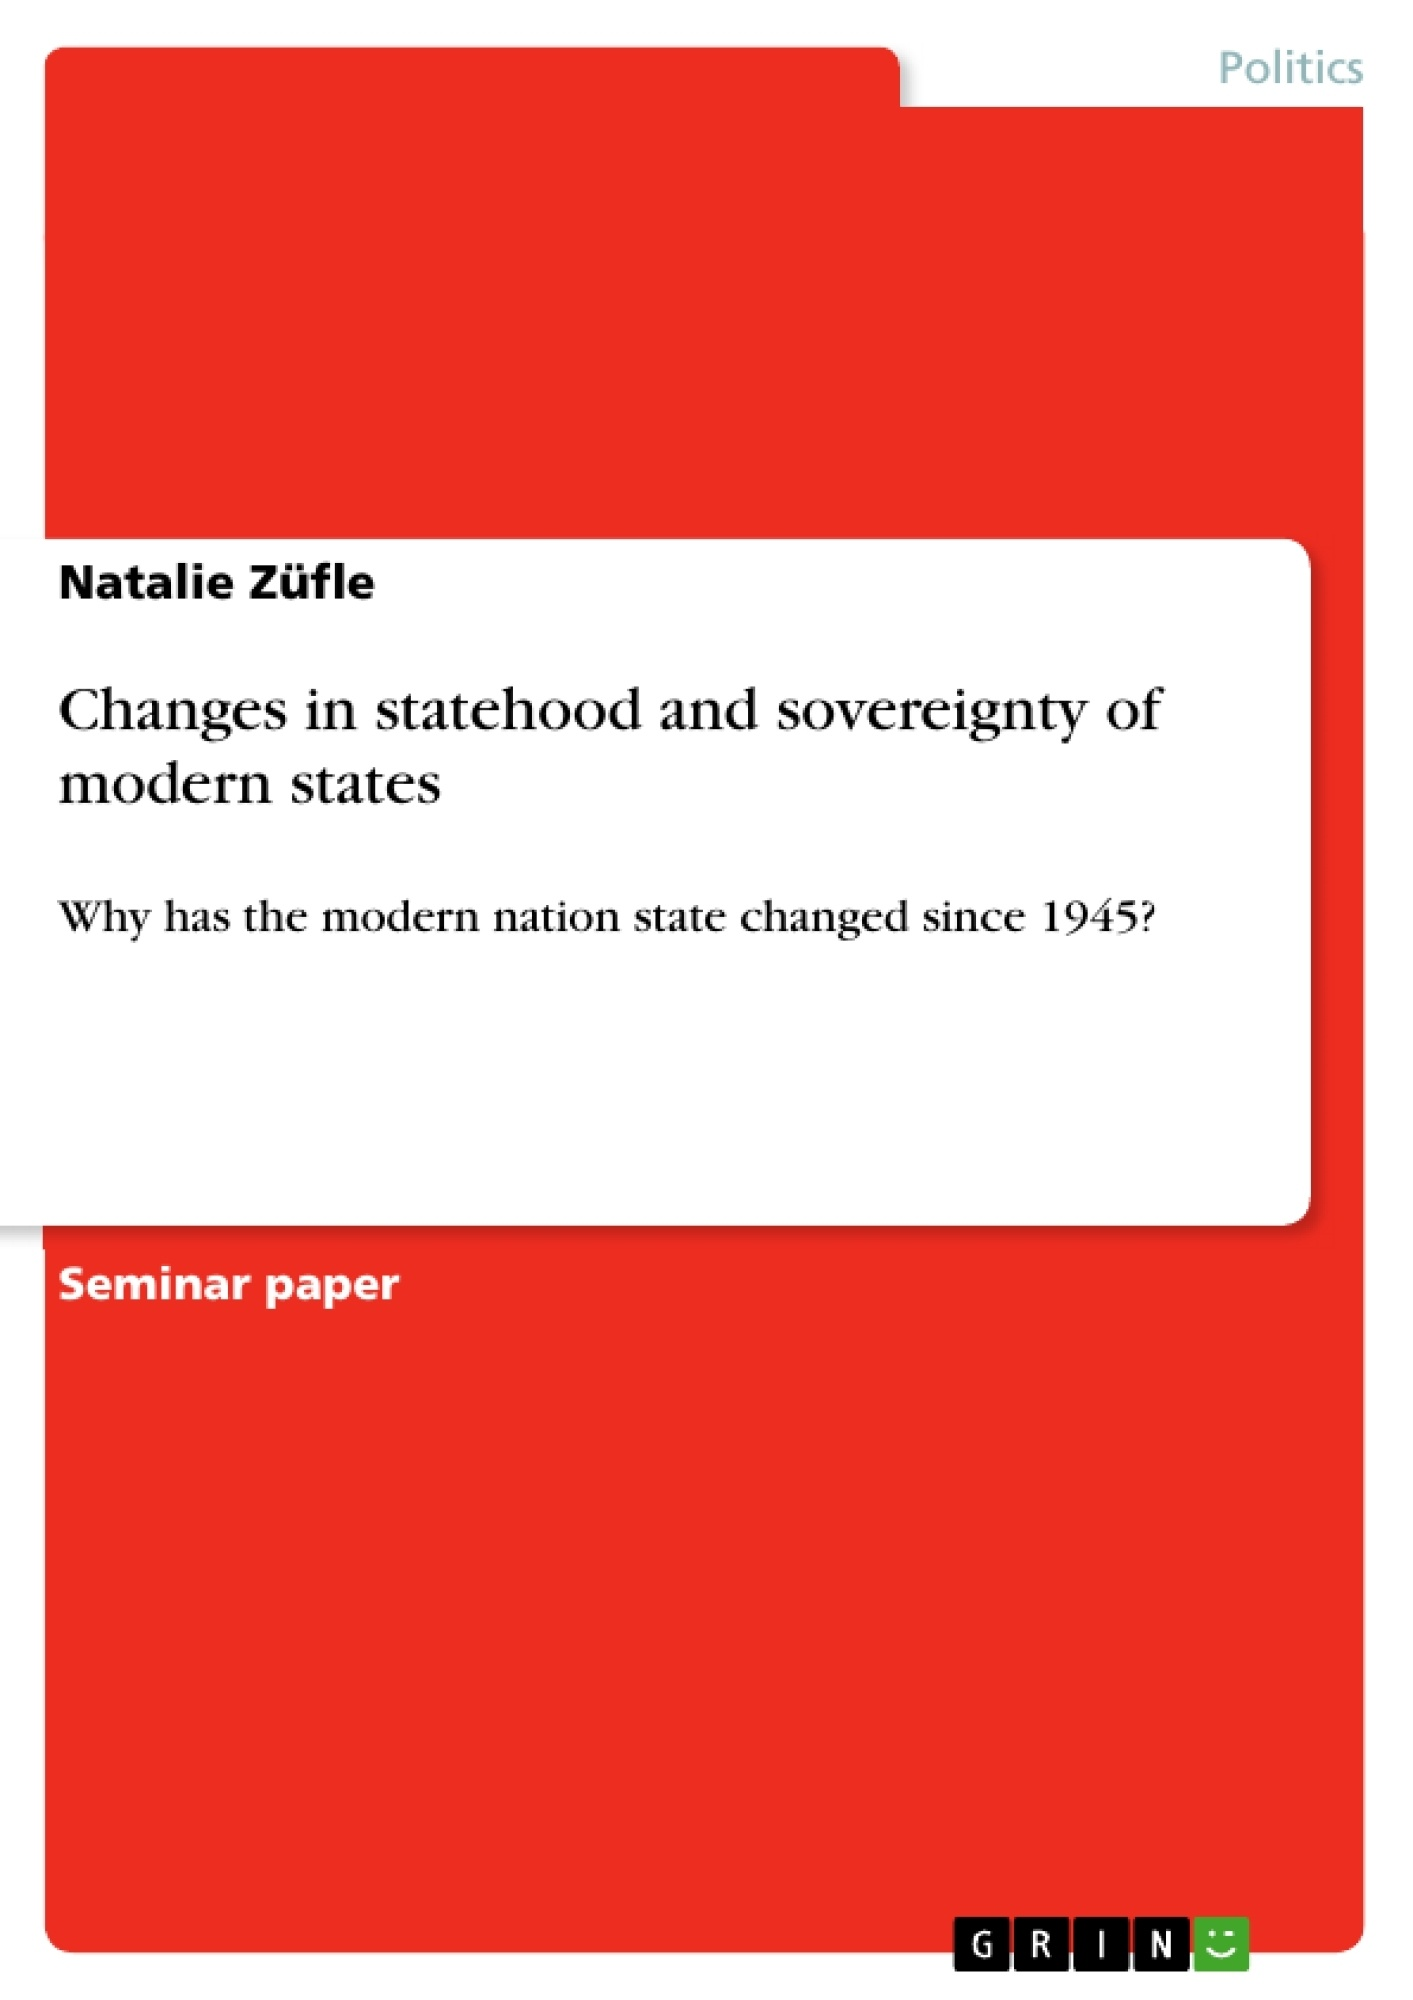 Title: Changes in statehood and sovereignty of modern states